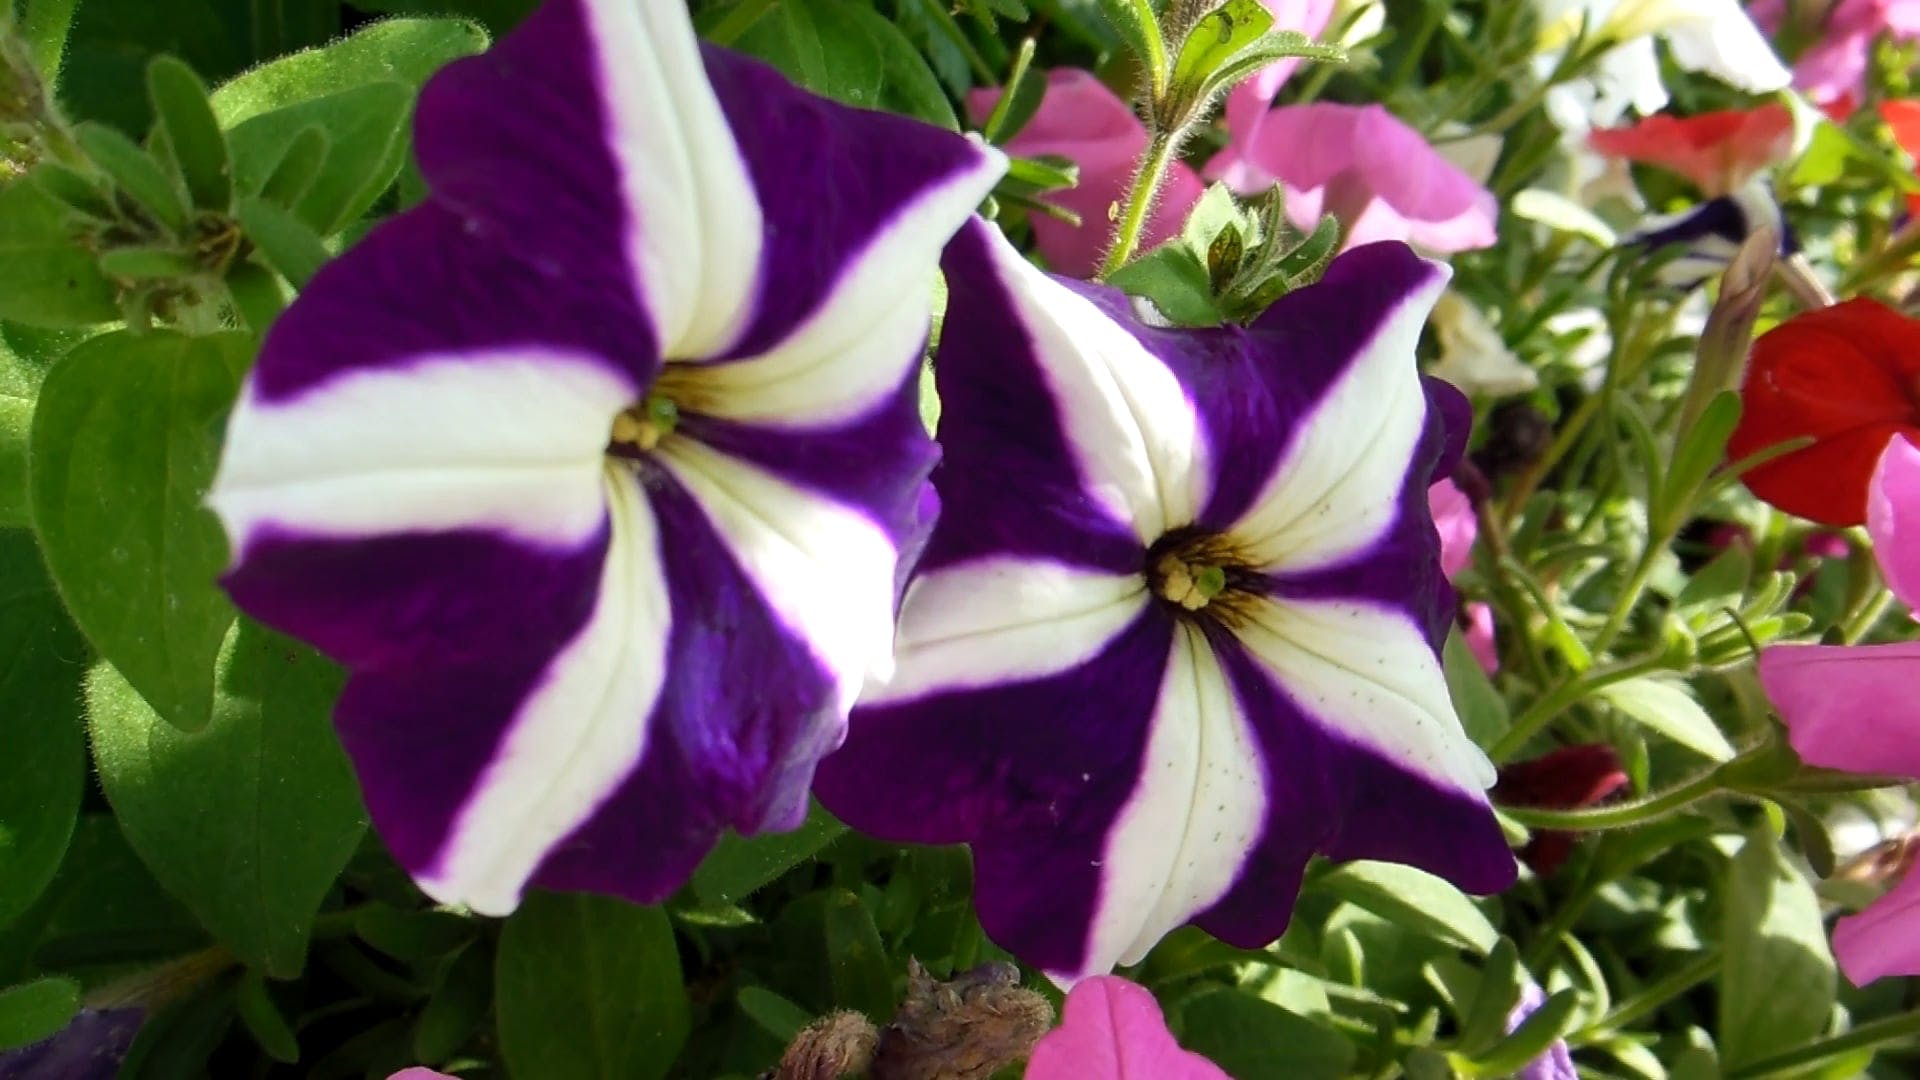 Purple Striped Flowers Video